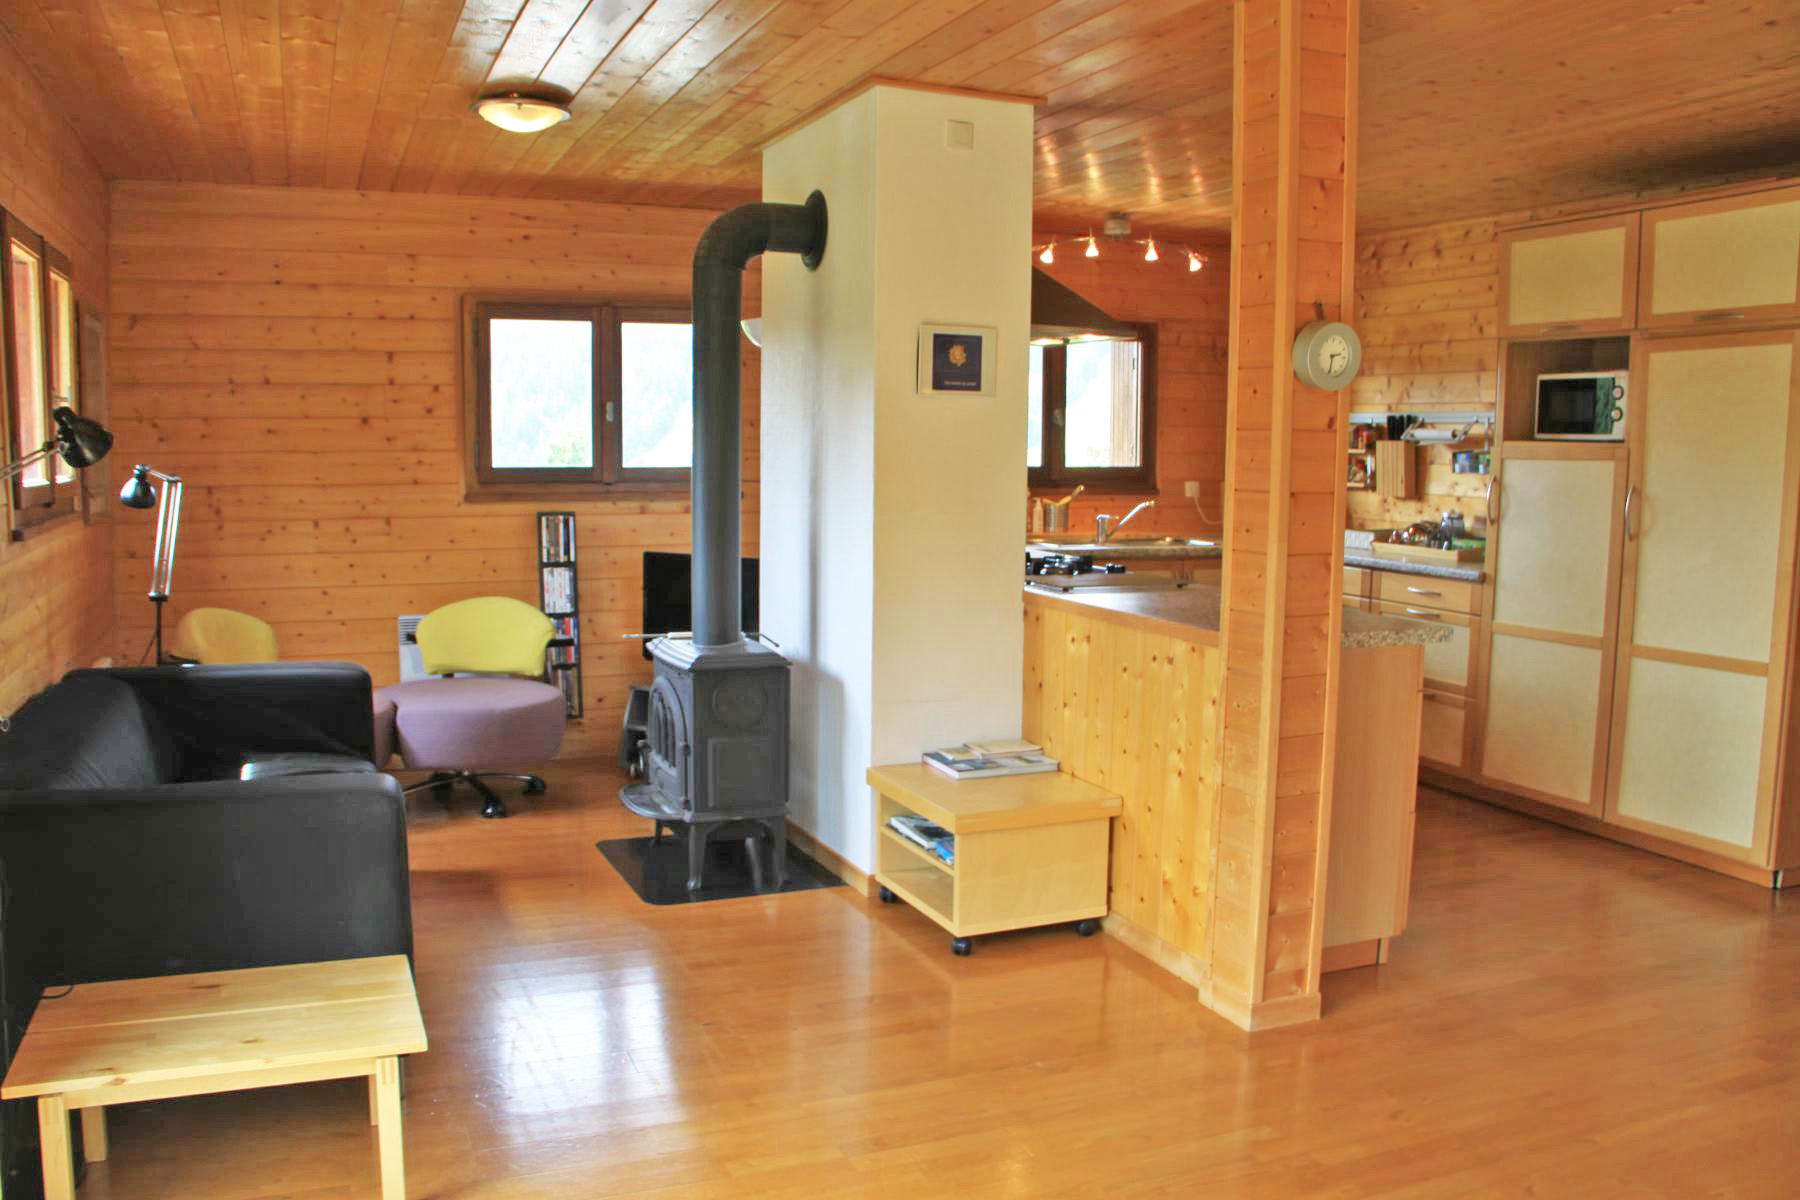 6 Bedroom Chalet near Skiing and Golf in Les Gets'